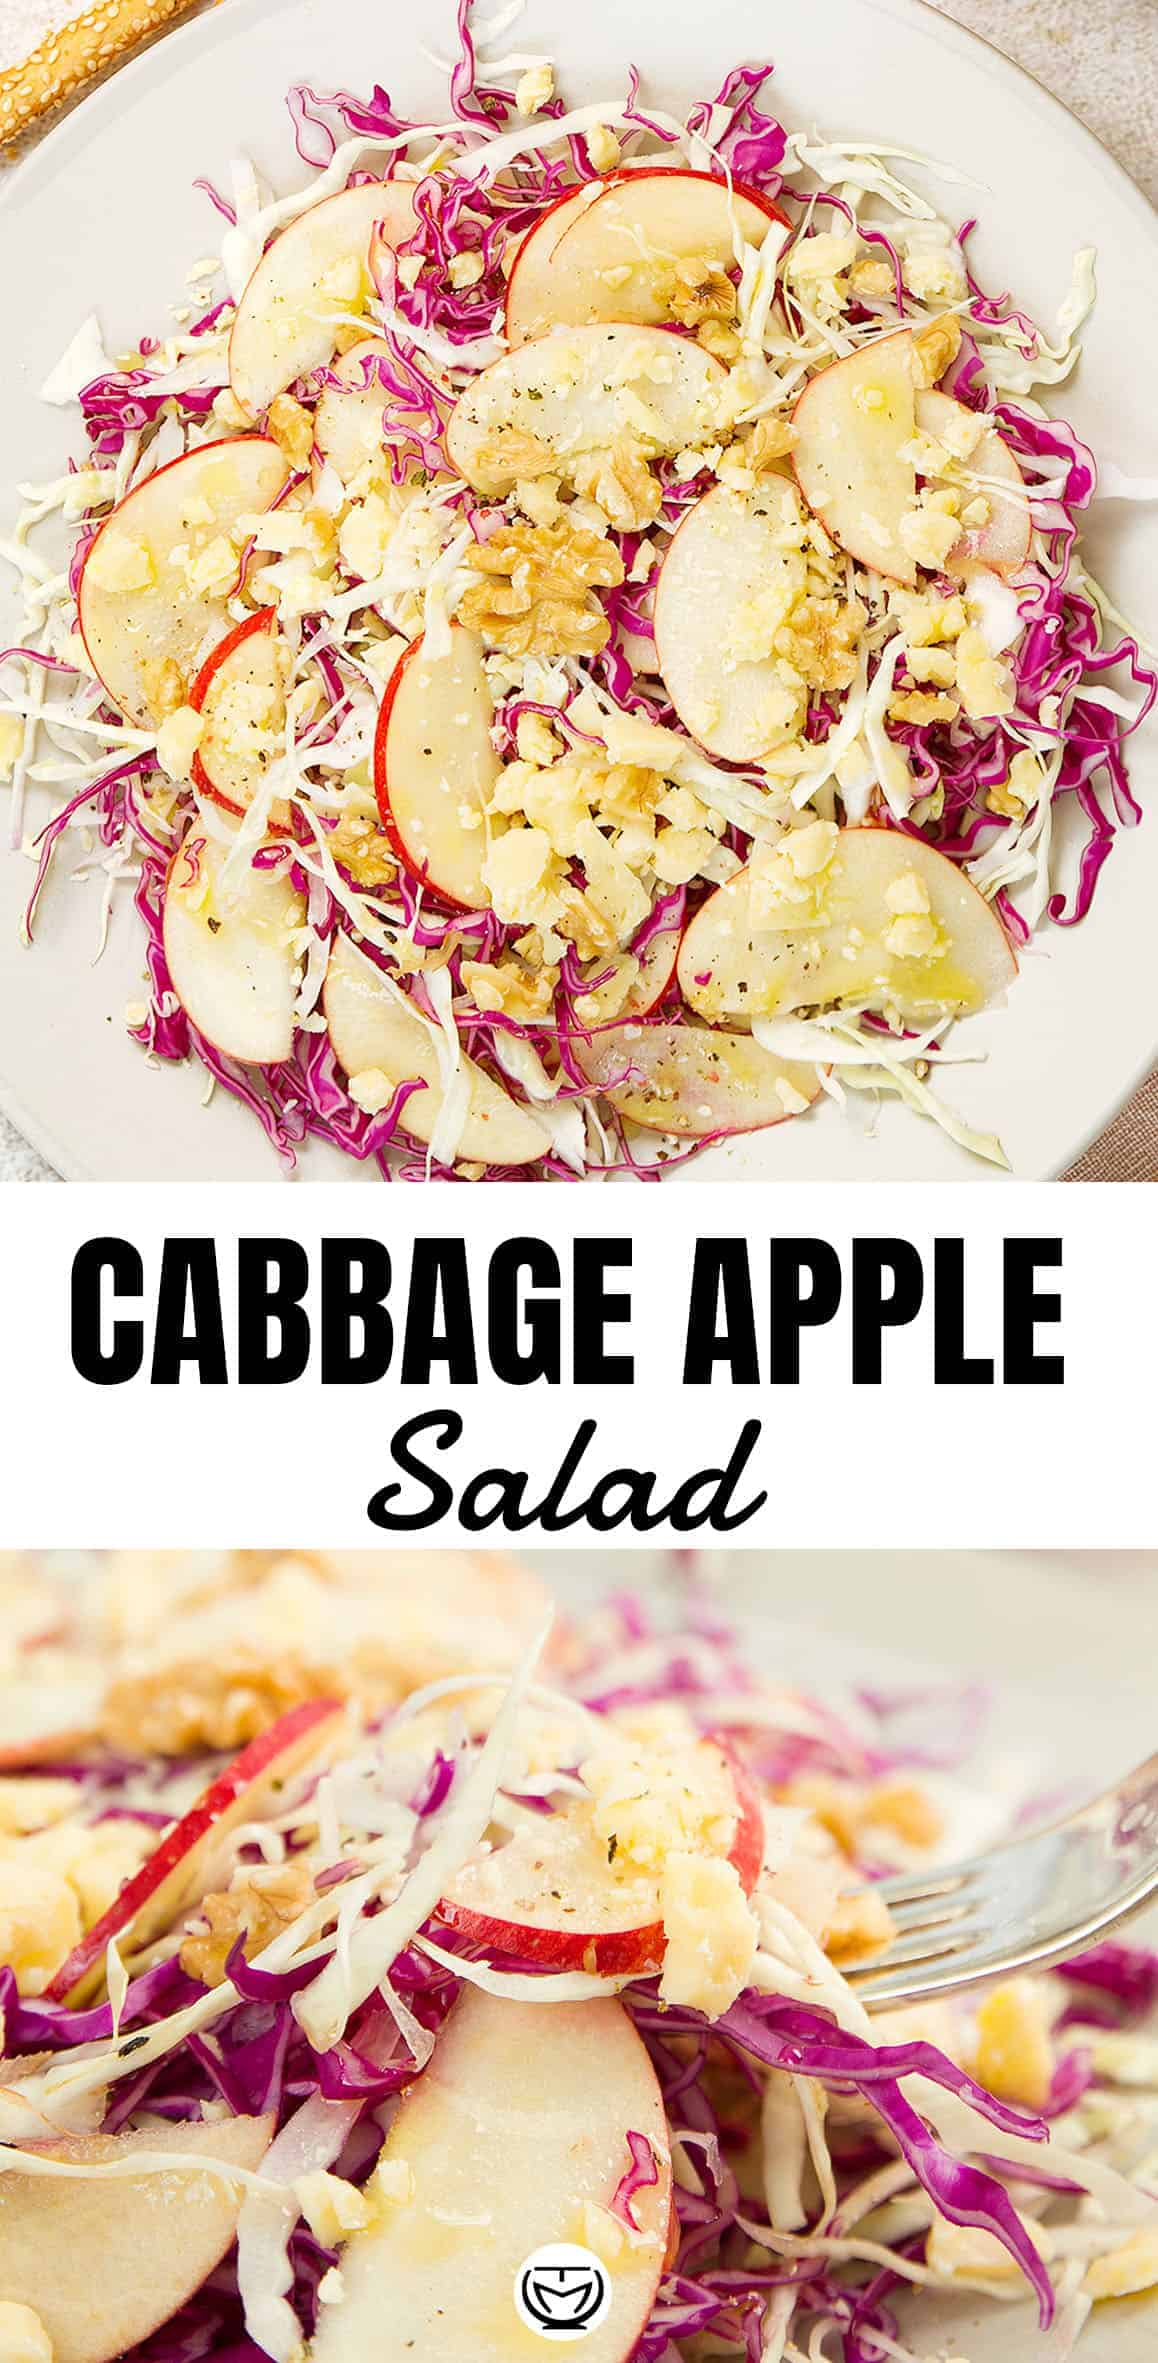 This delicious, colorful and crunchy cabbage salad is ready in 10 minutes, budget-friendly and packed with health benefits! #saladrecipes #saladrecipeshealthy #vegetarianrecipes #cheapmeals #cabbagerecipes #glutenfreerecipes